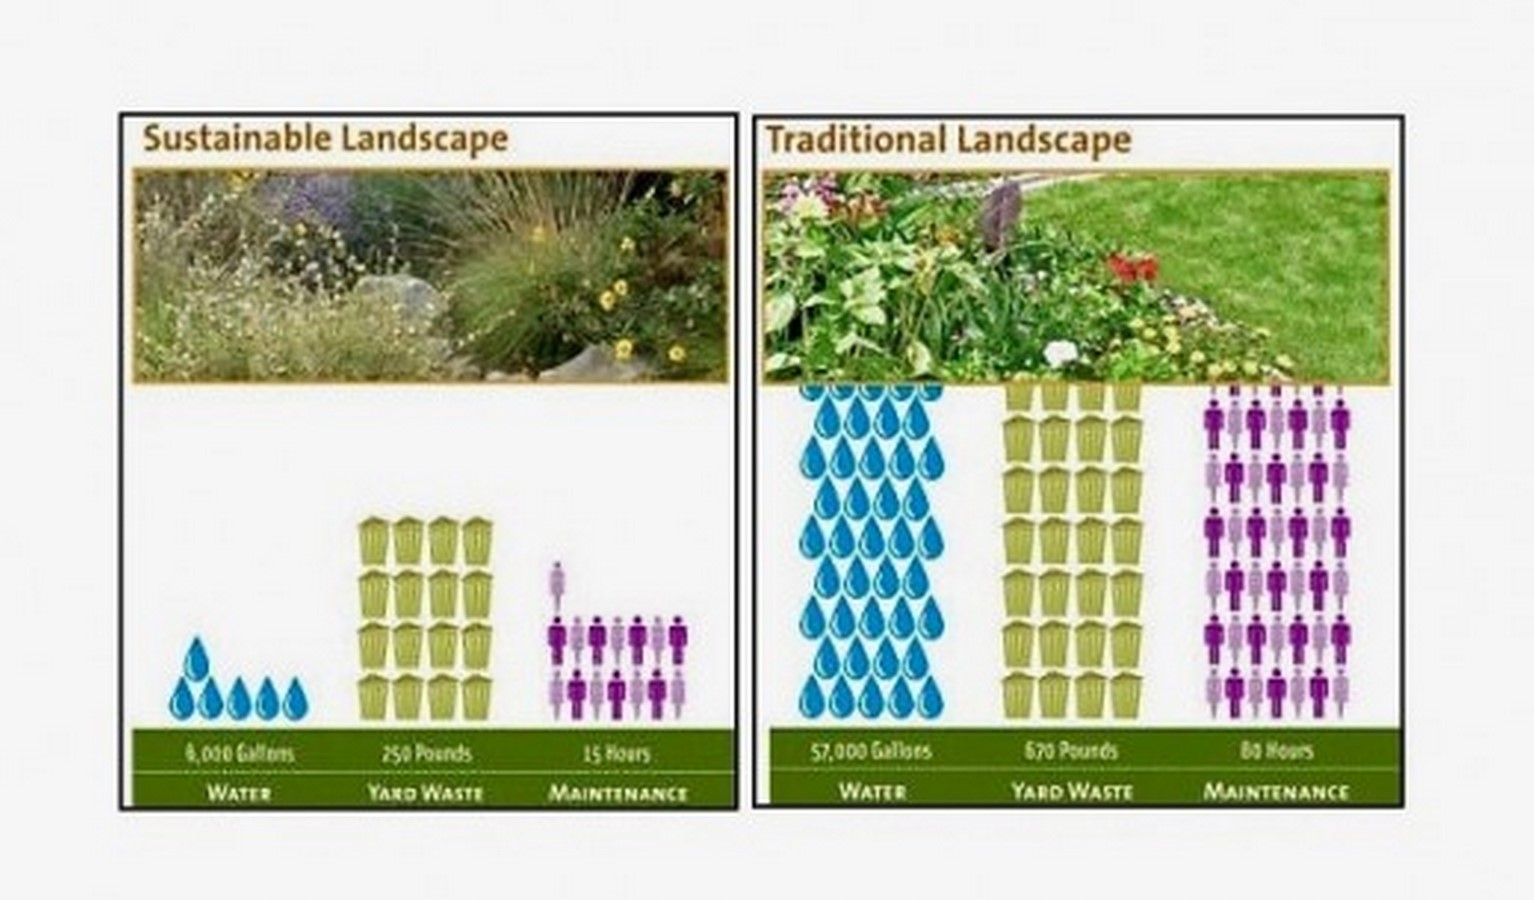 10 practices in Landscape architecture that you did not know were unsustainable - Sheet9